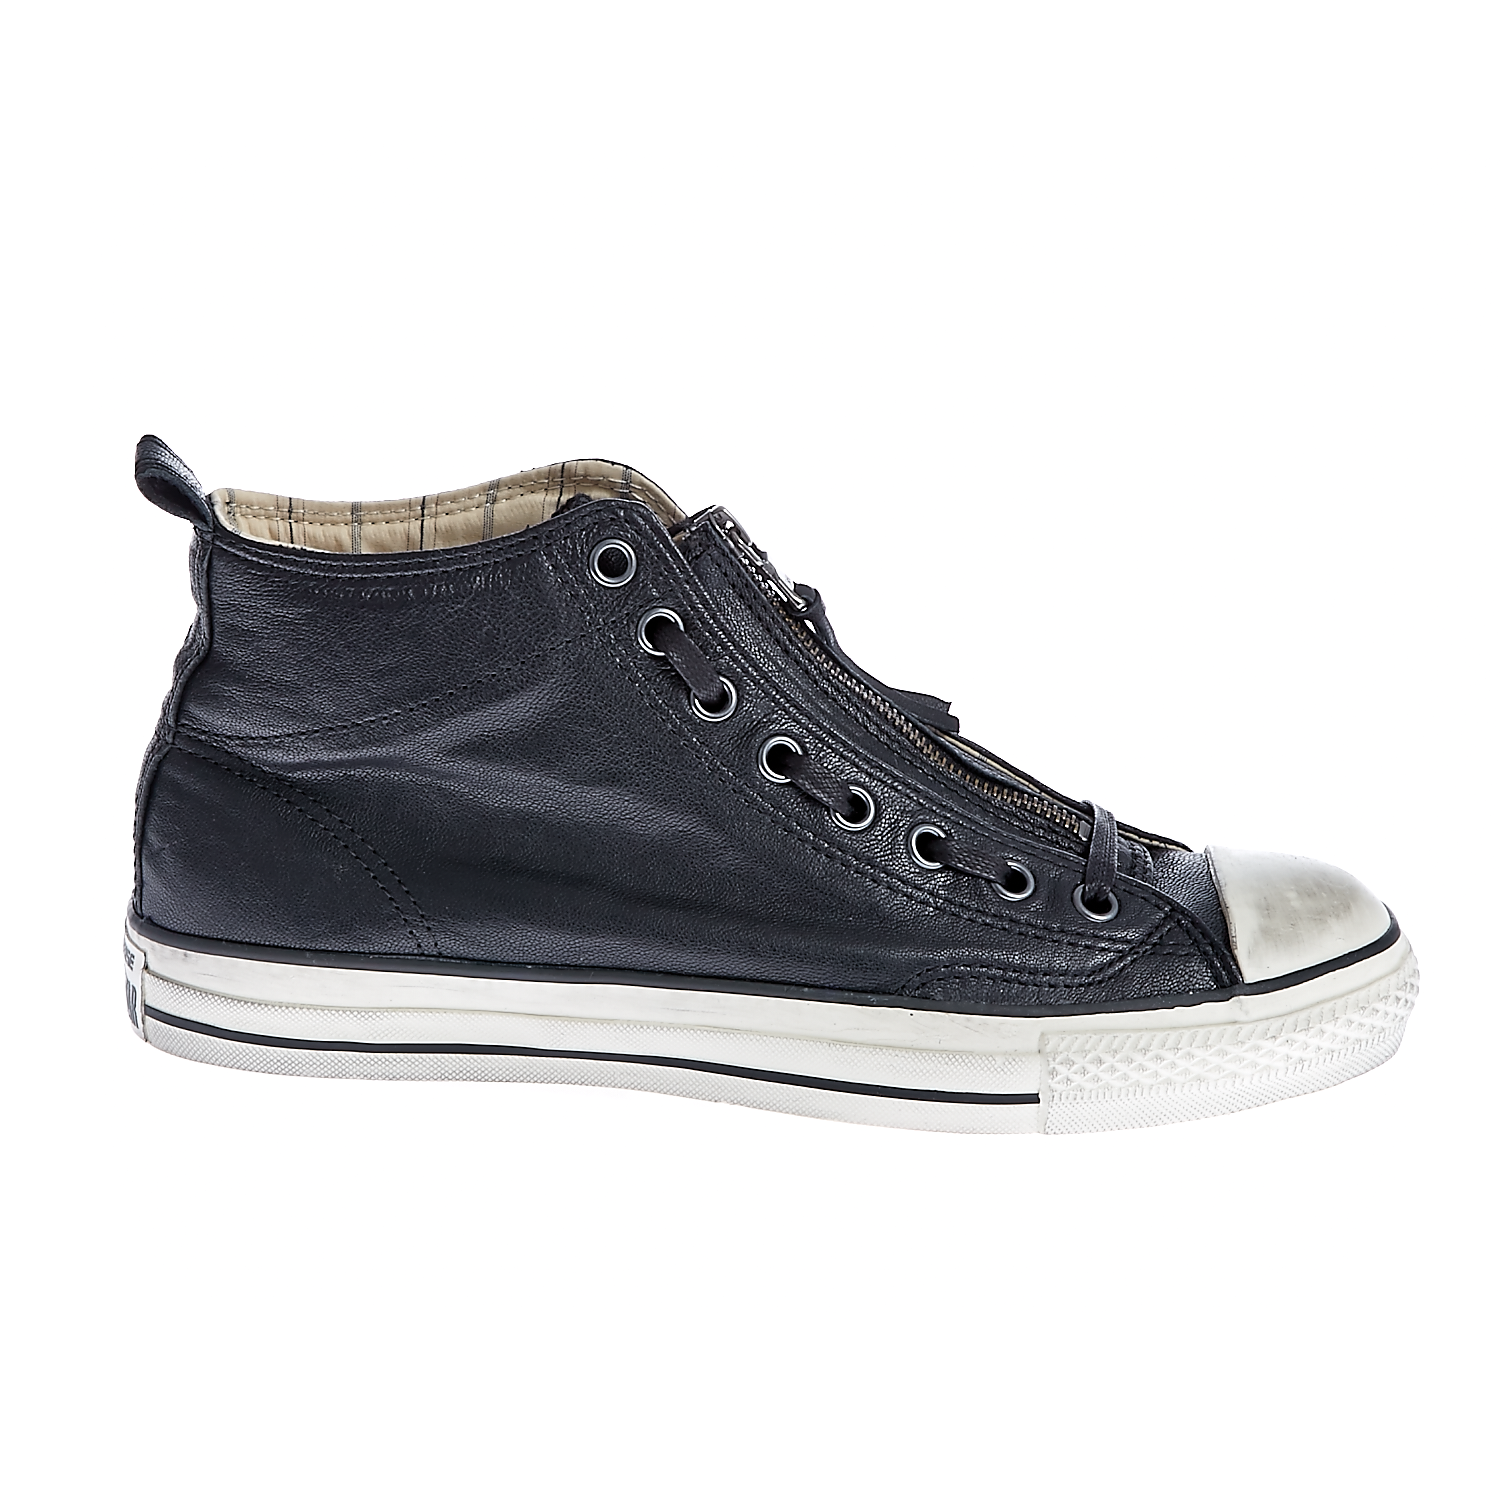 CONVERSE – Unisex παπούτσια Chuck Taylor All Star Center Z μαύρα